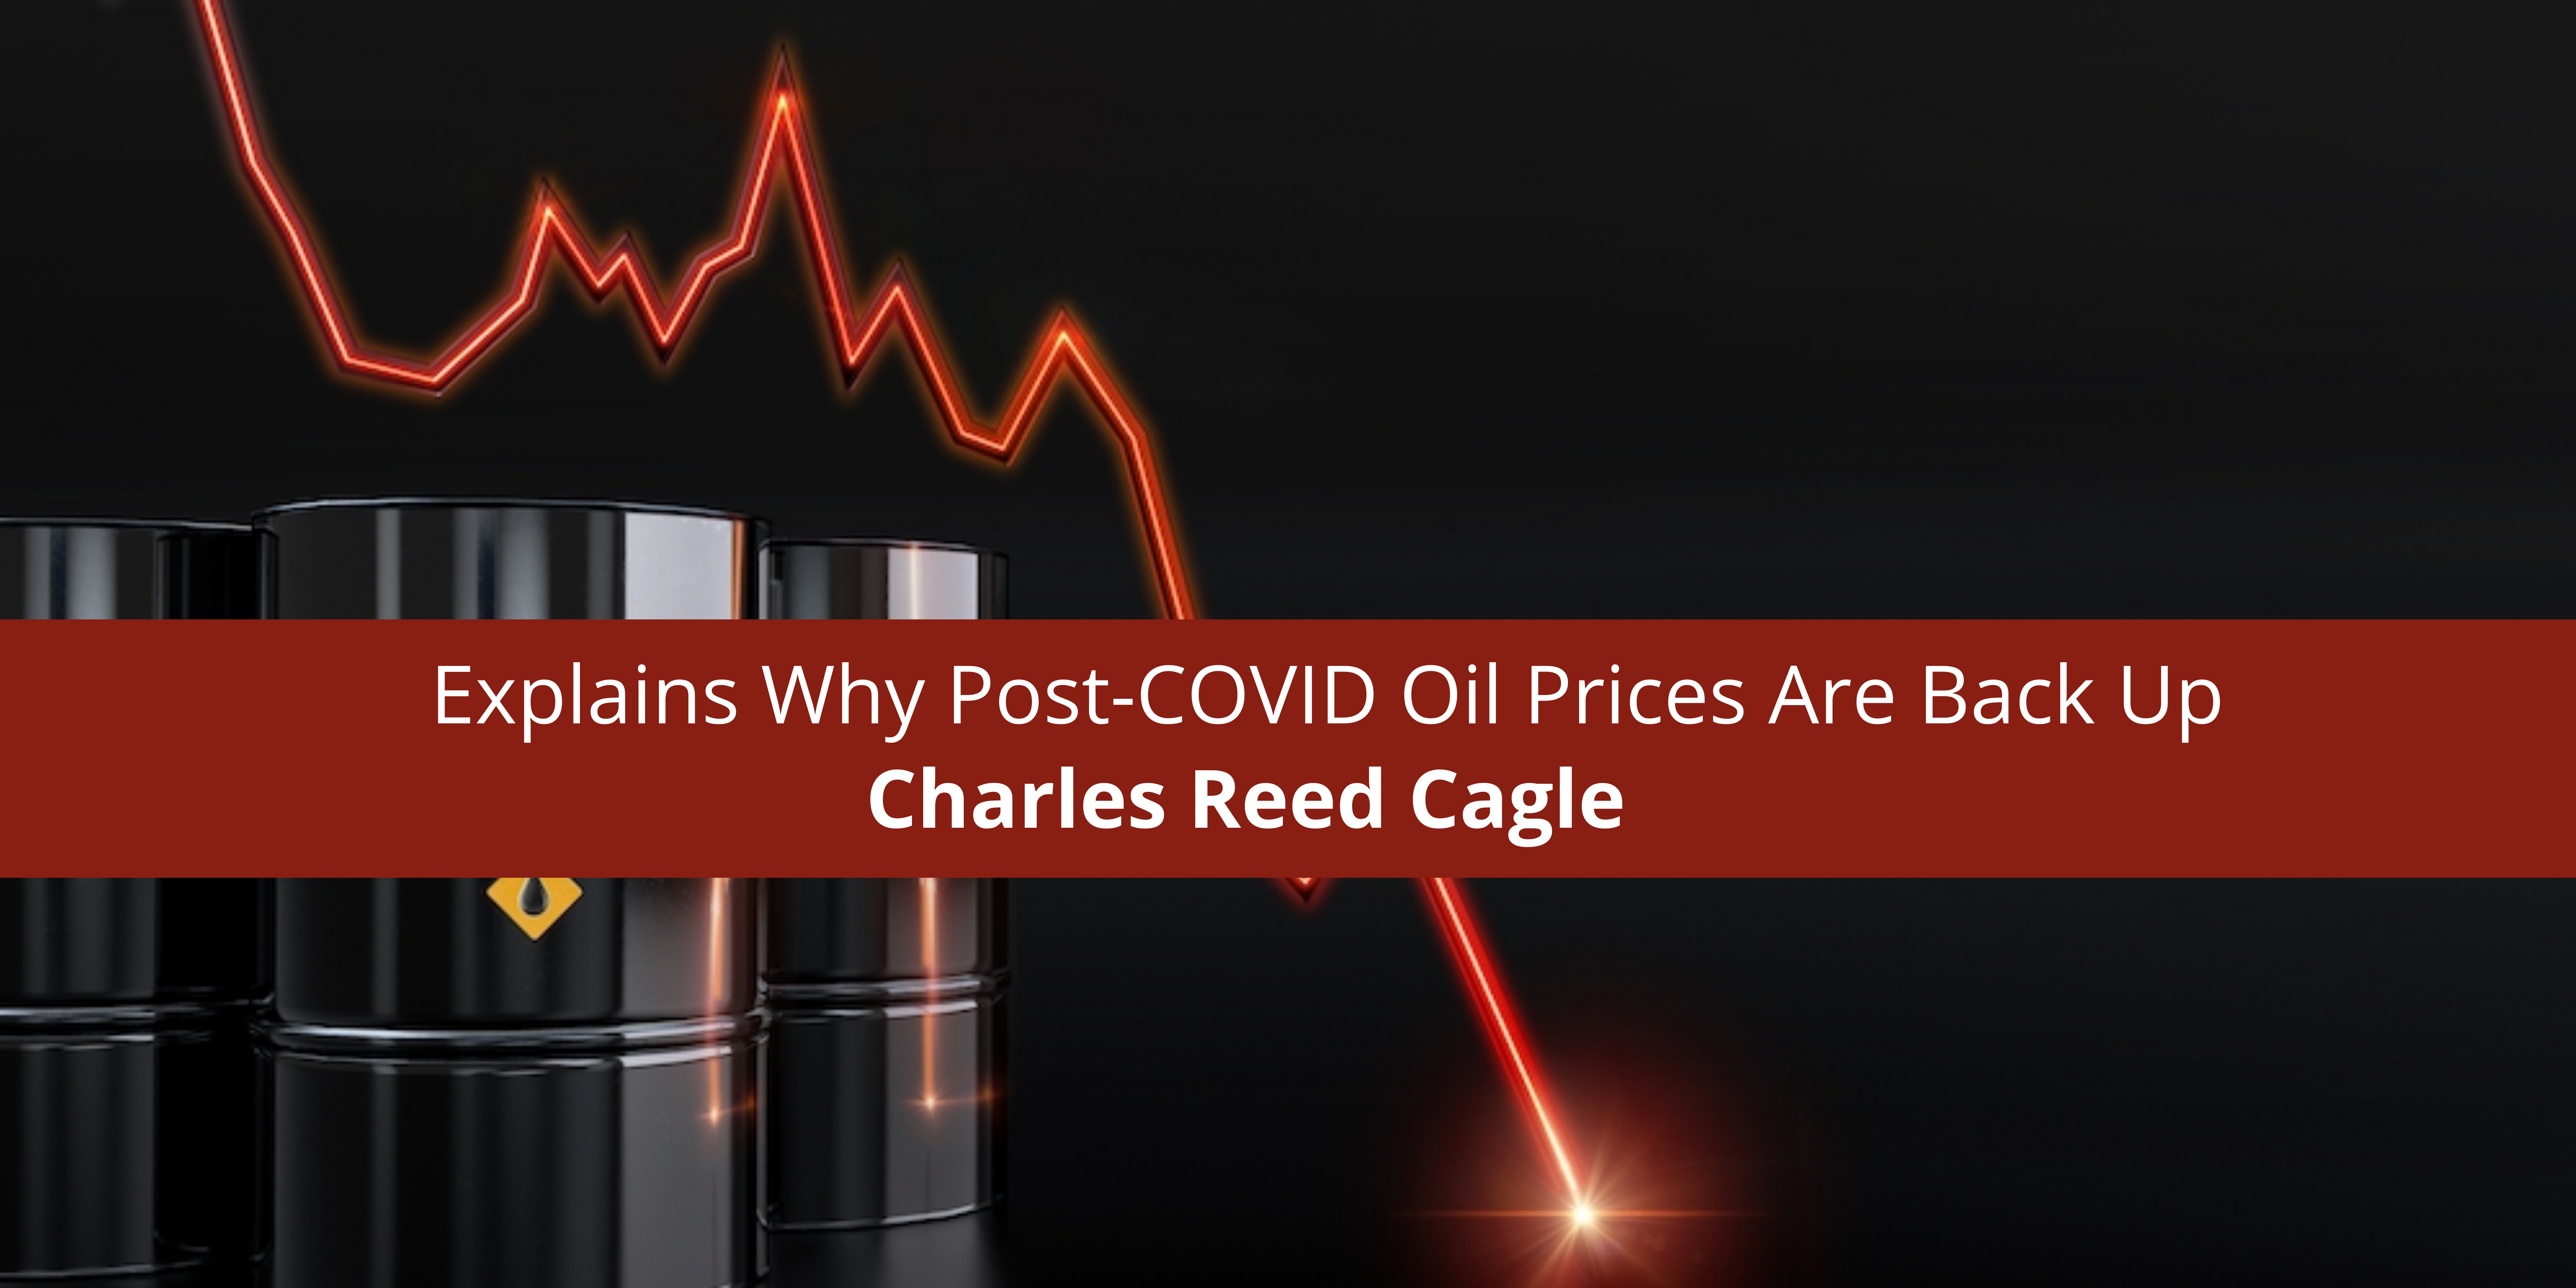 Charles Reed Cagle Explains Why Post-COVID Oil Prices Are Back Up